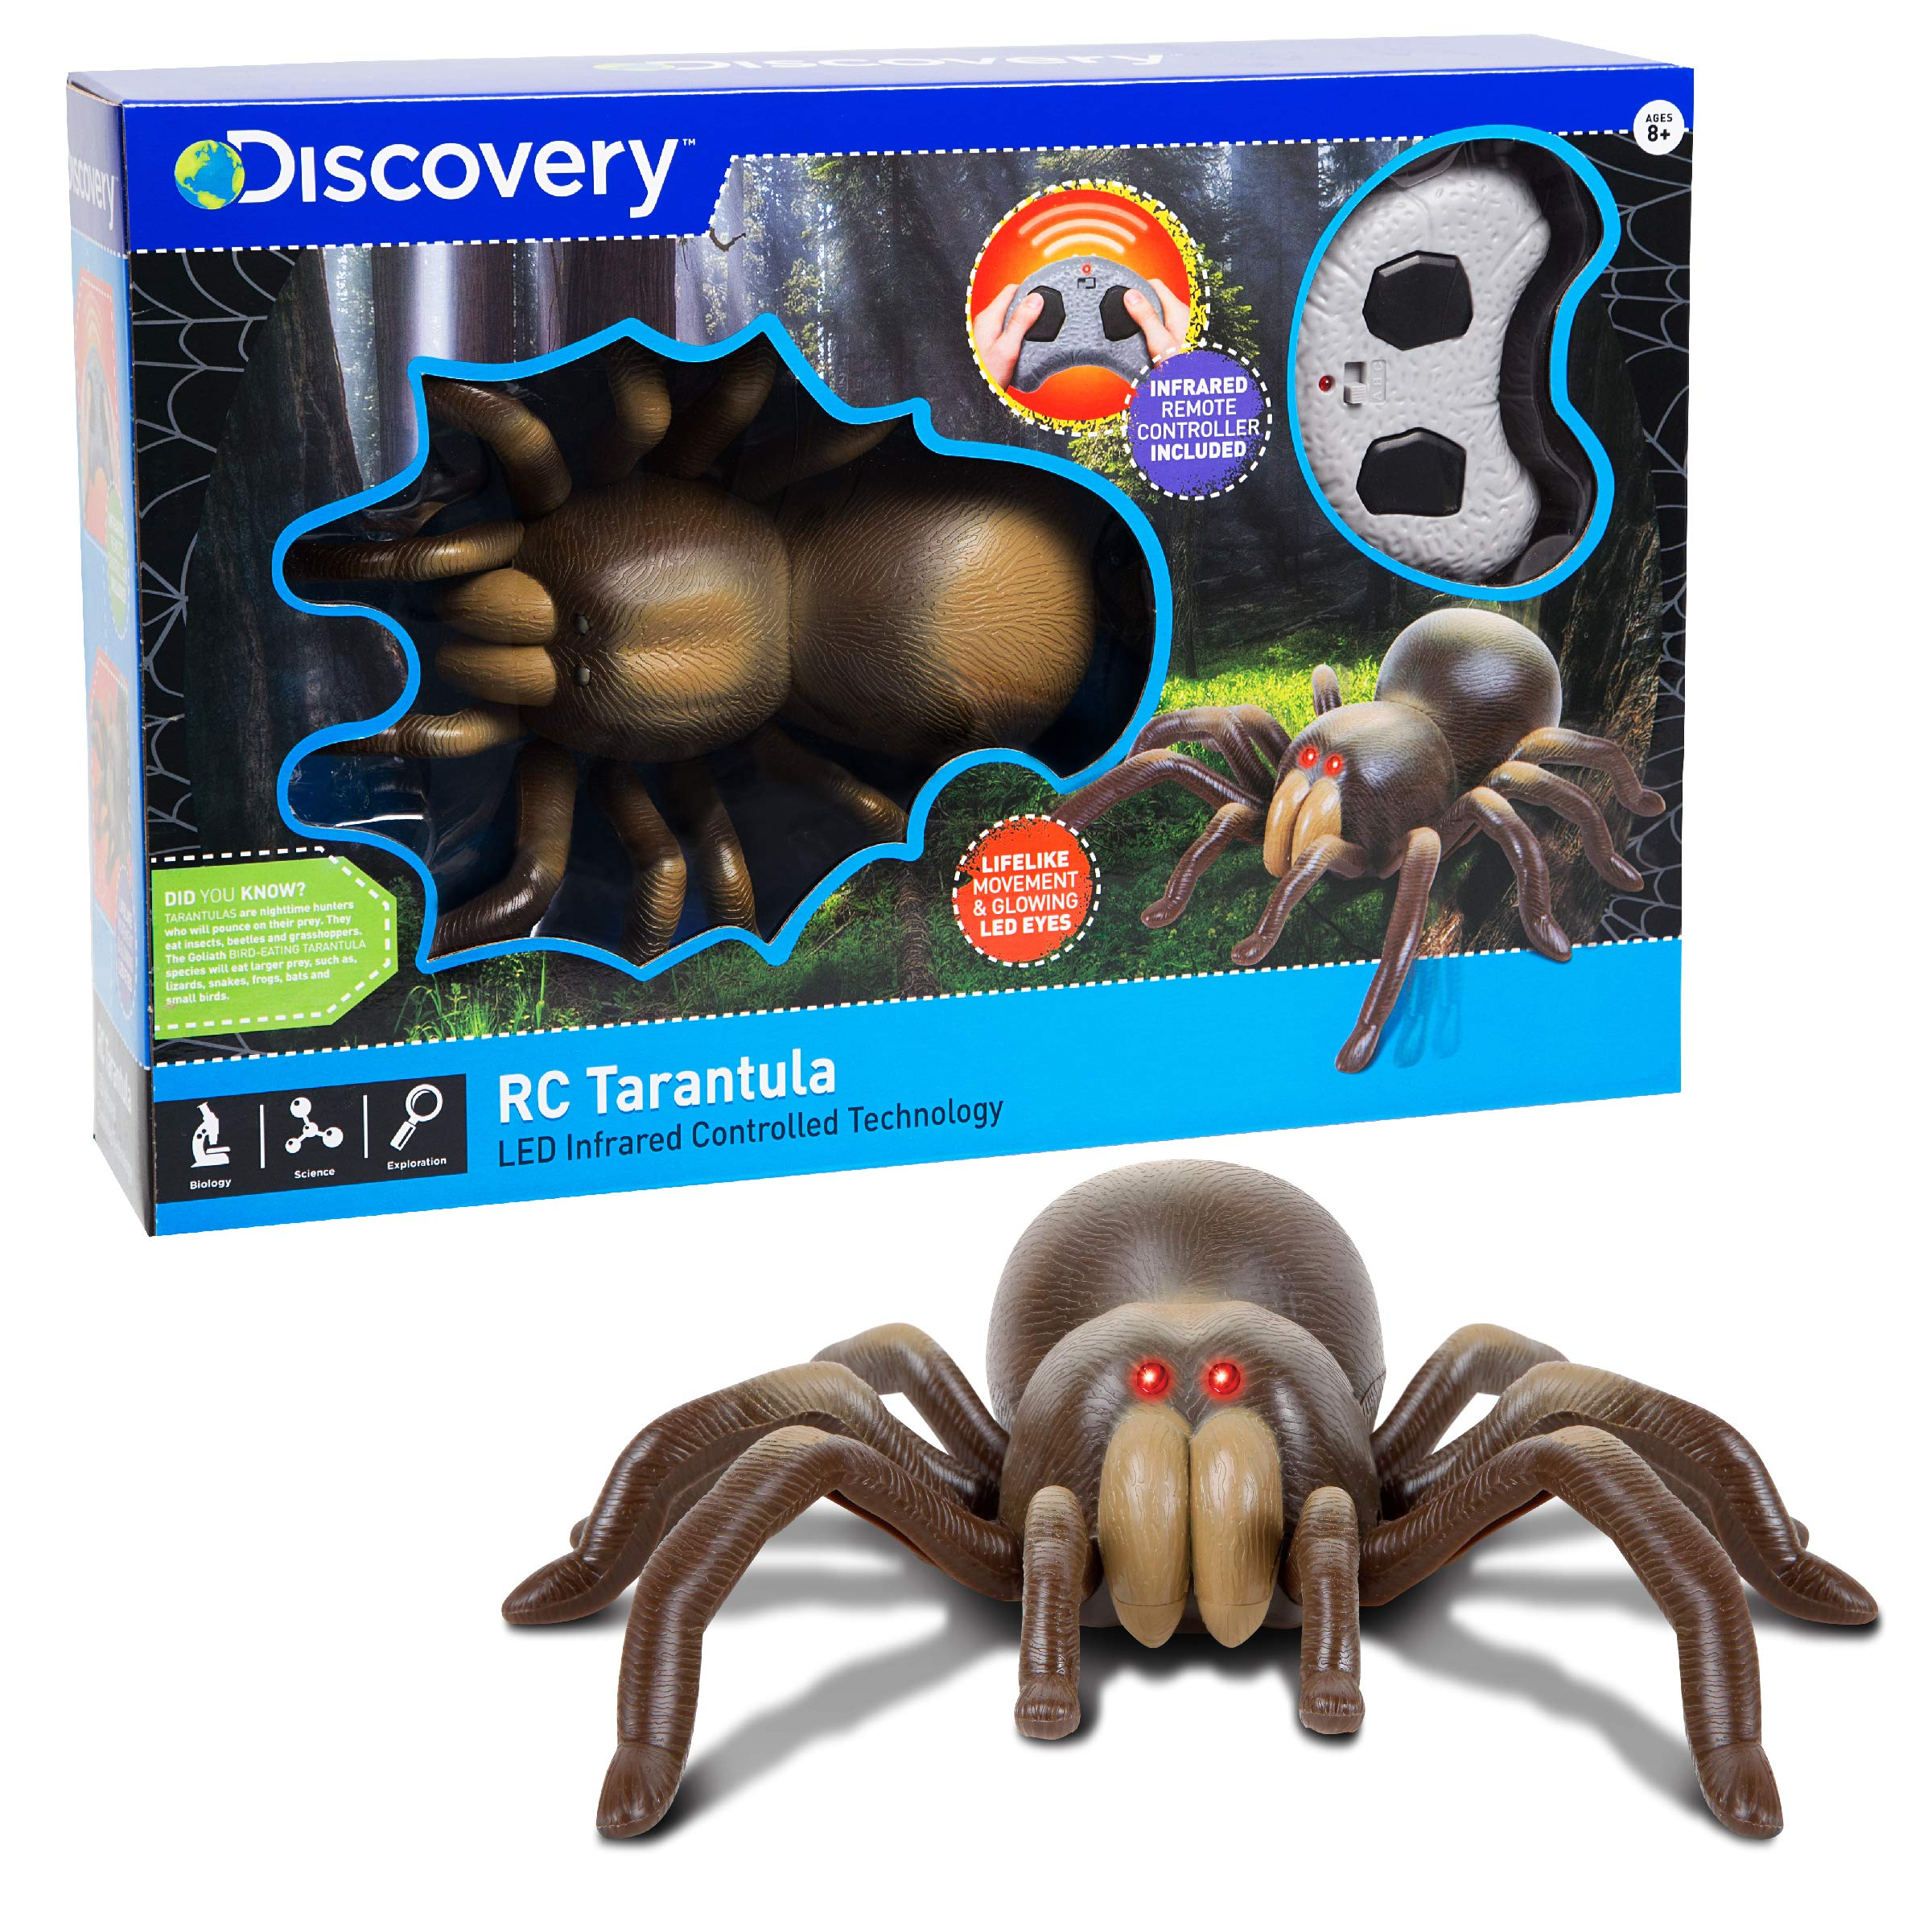 DISCOVERY KIDS RC Moving Tarantula Spider, Wireless Remote Control Toy for Kids, Great for Pranks and Halloween Decorations, Realistic Scurrying Movement, Glowing Scary Red LED Eyes by Discovery Kids (Image #3)